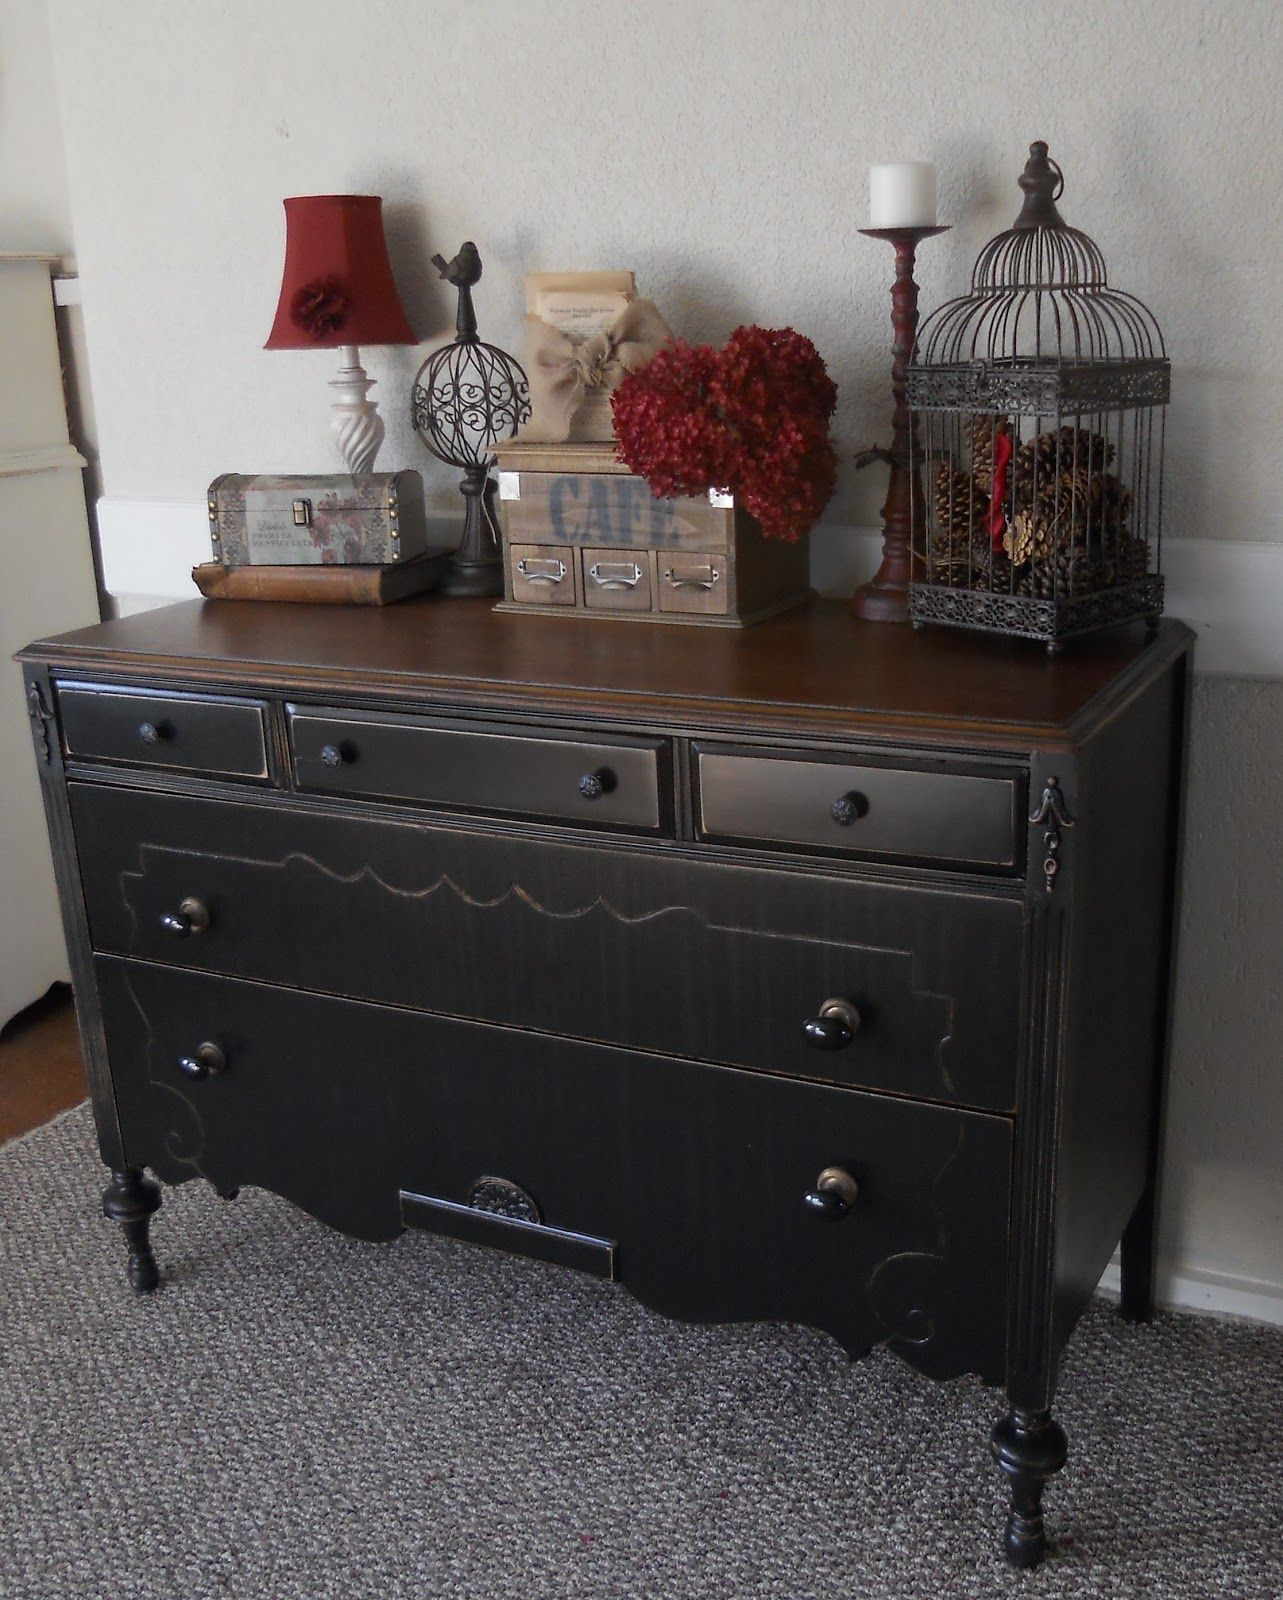 black refinished dresser   createinspire   Back to Black  Antique Dresser. black refinished dresser   createinspire   Back to Black  Antique